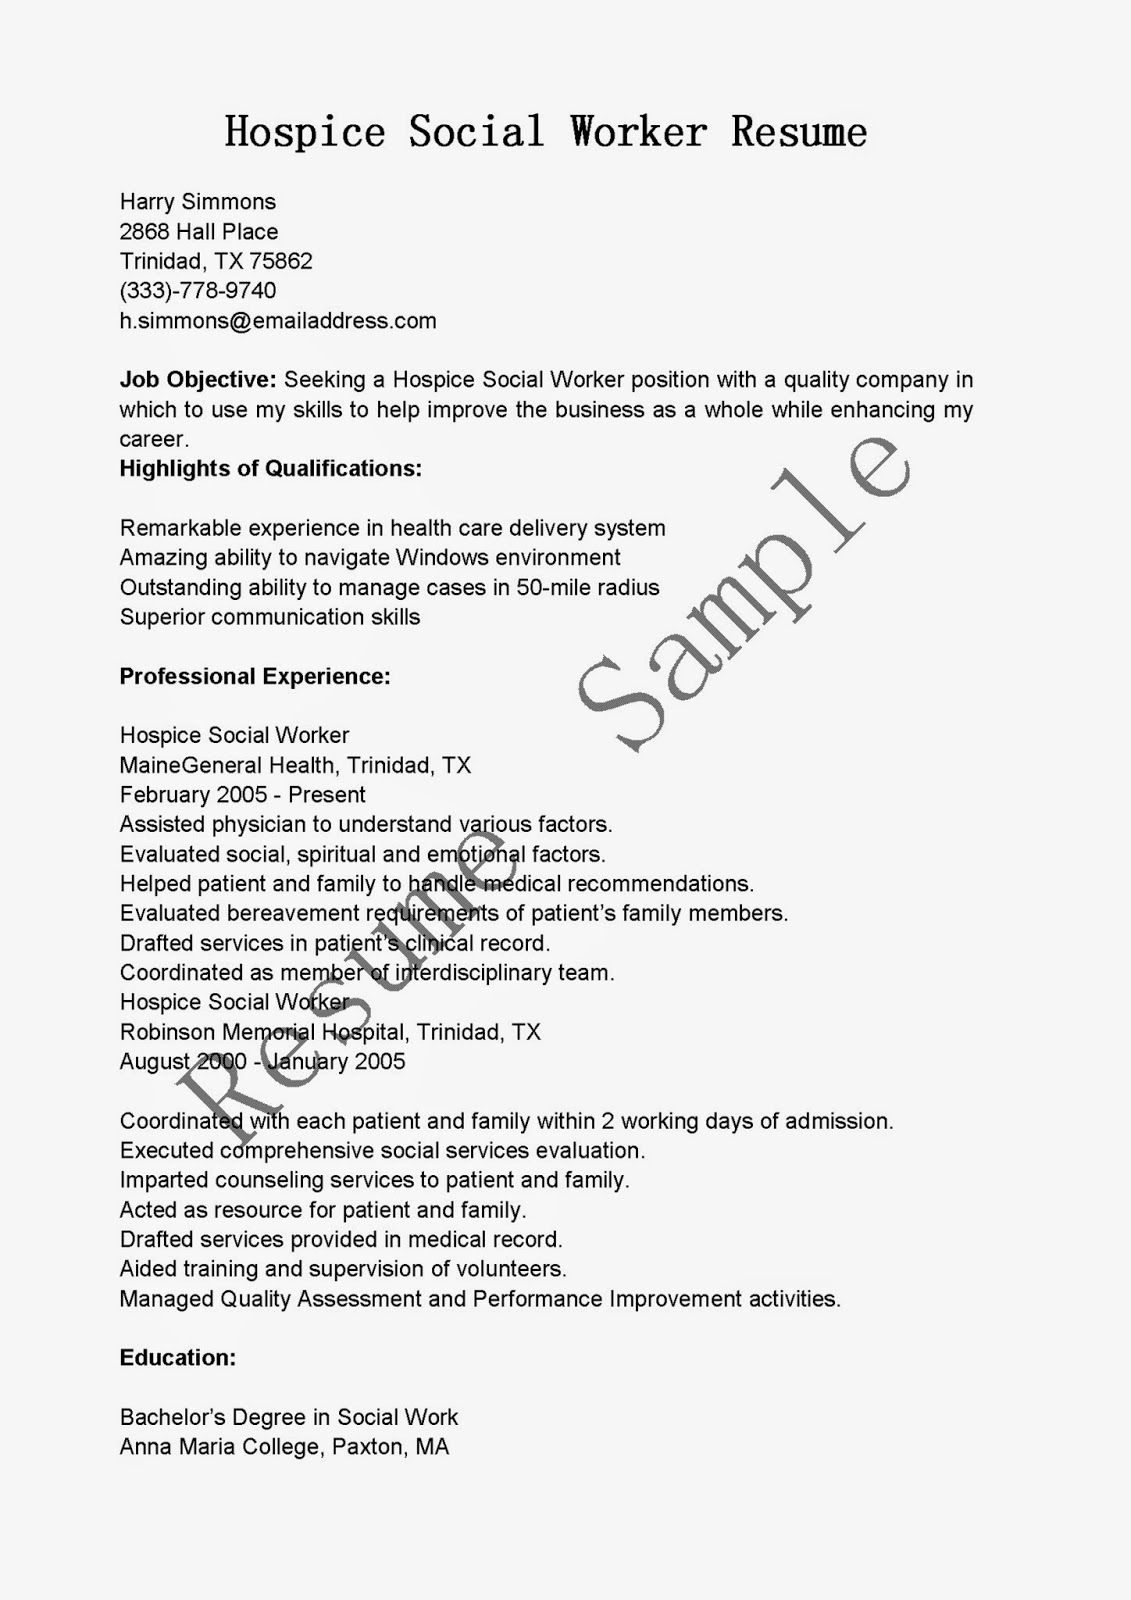 Social Work how to include subjects learned in college on a resume